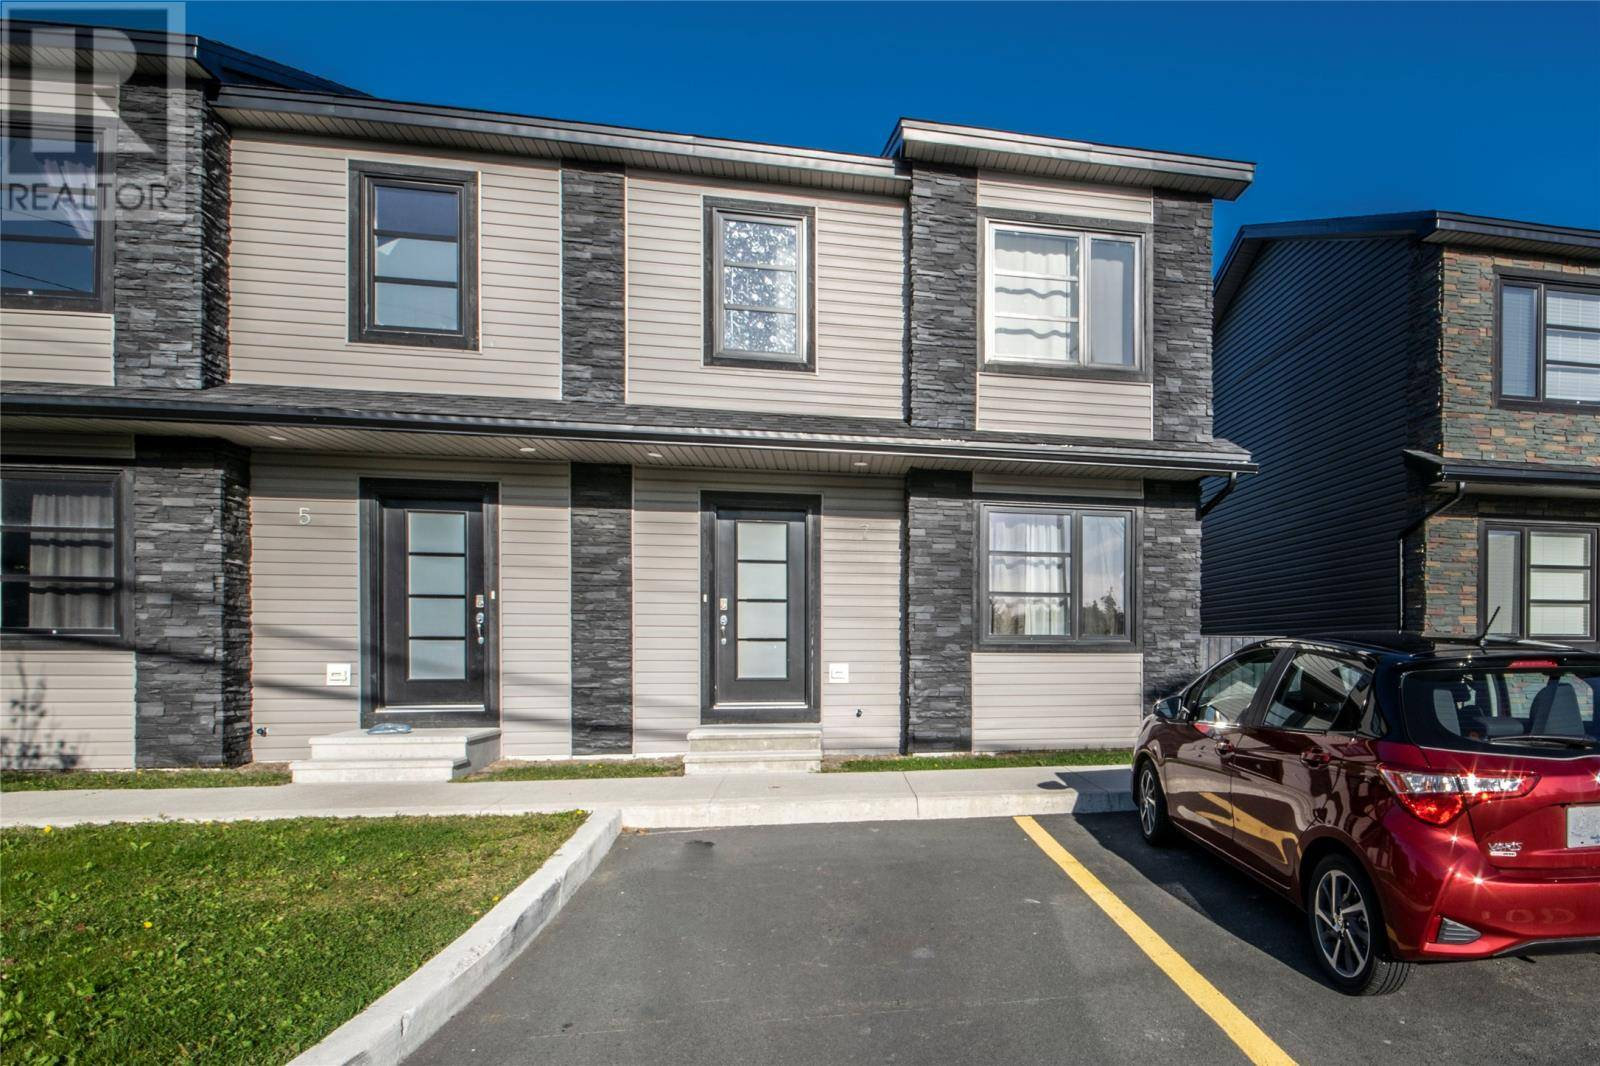 House for sale at 7 Worrell Cres Mount Pearl Newfoundland - MLS: 1205194